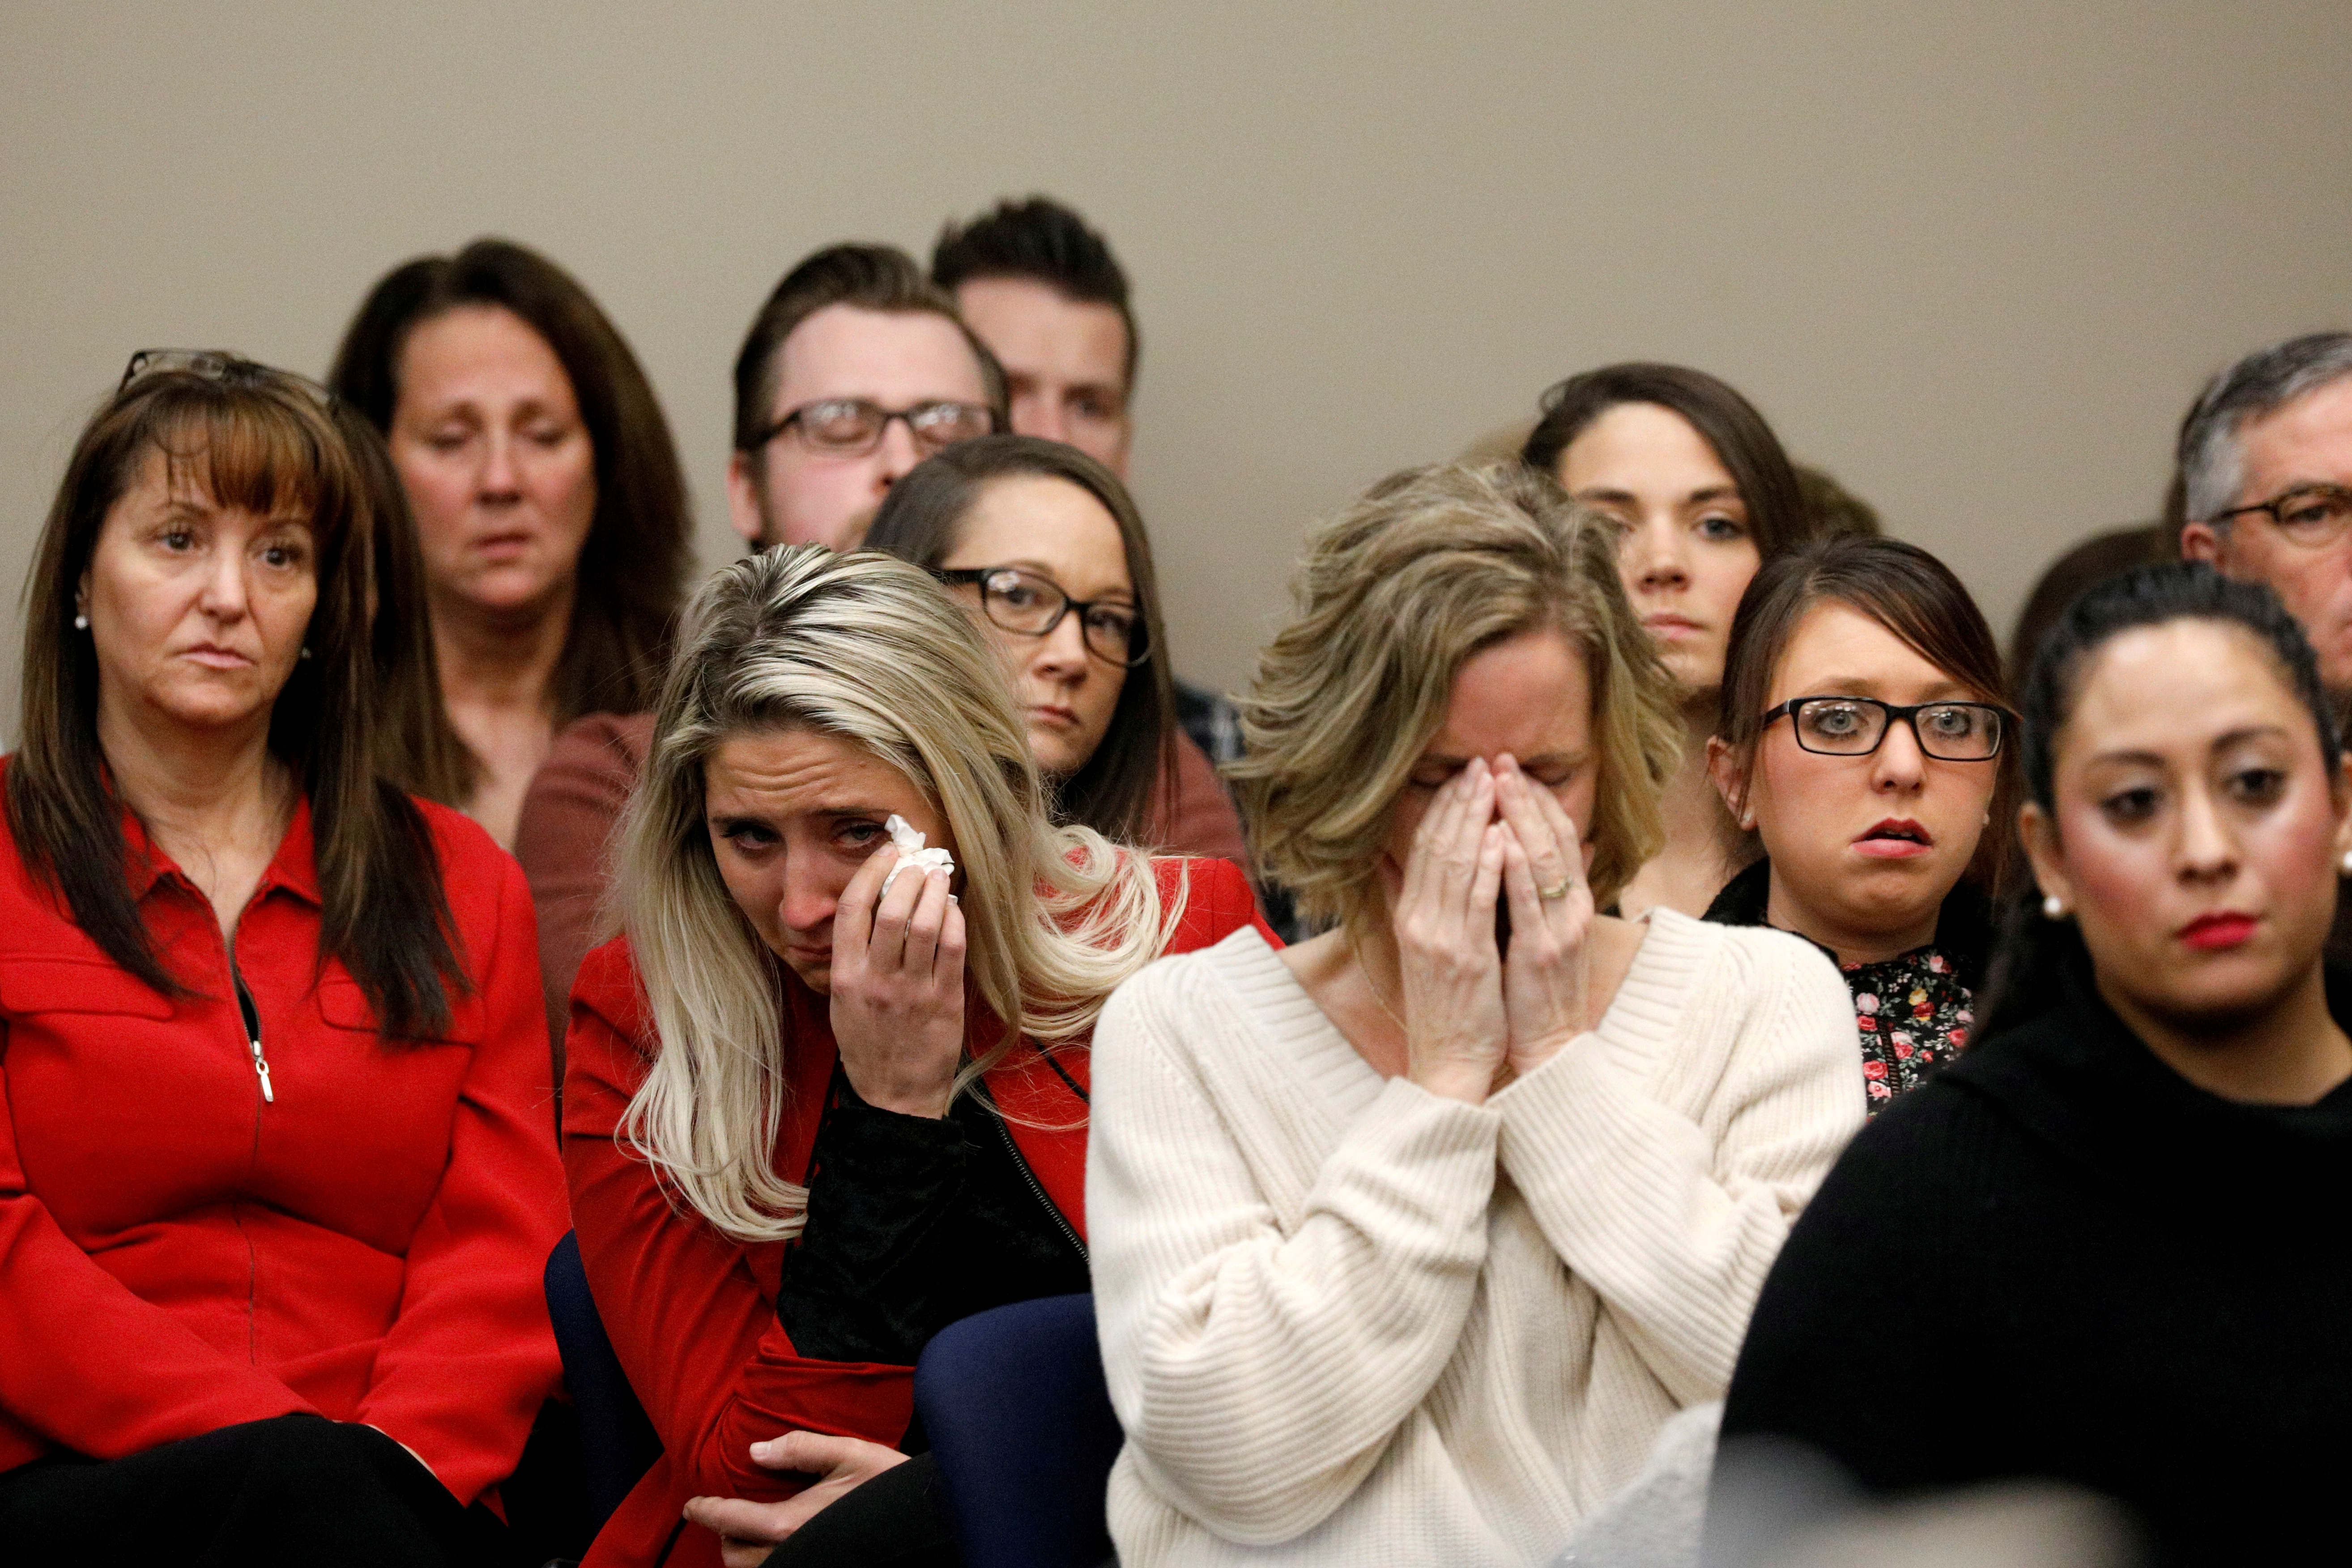 Victims and others look on as Rachael Denhollander speaks at the sentencing hearing for Larry Nassar, a former team USA Gymnastics doctor who pleaded guilty in November 2017 to sexual assault charges, in Lansing, Michigan, U.S., January 24, 2018. REUTERS/Brendan McDermid